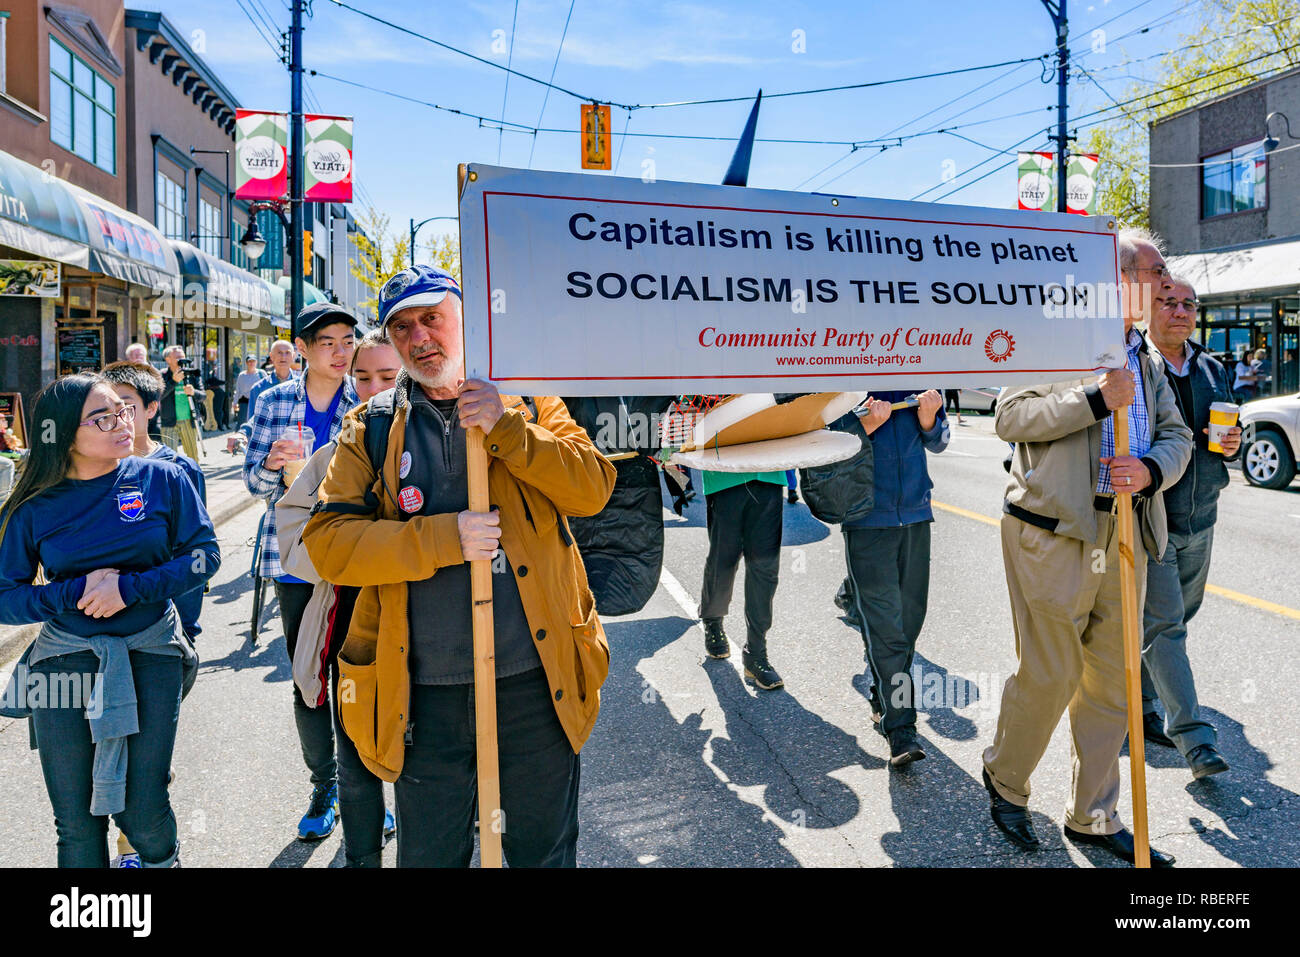 Communist Party banner, 2018 Earth Day Parade, Commercial Drive, Vancouver, British Columbia, Canada. - Stock Image